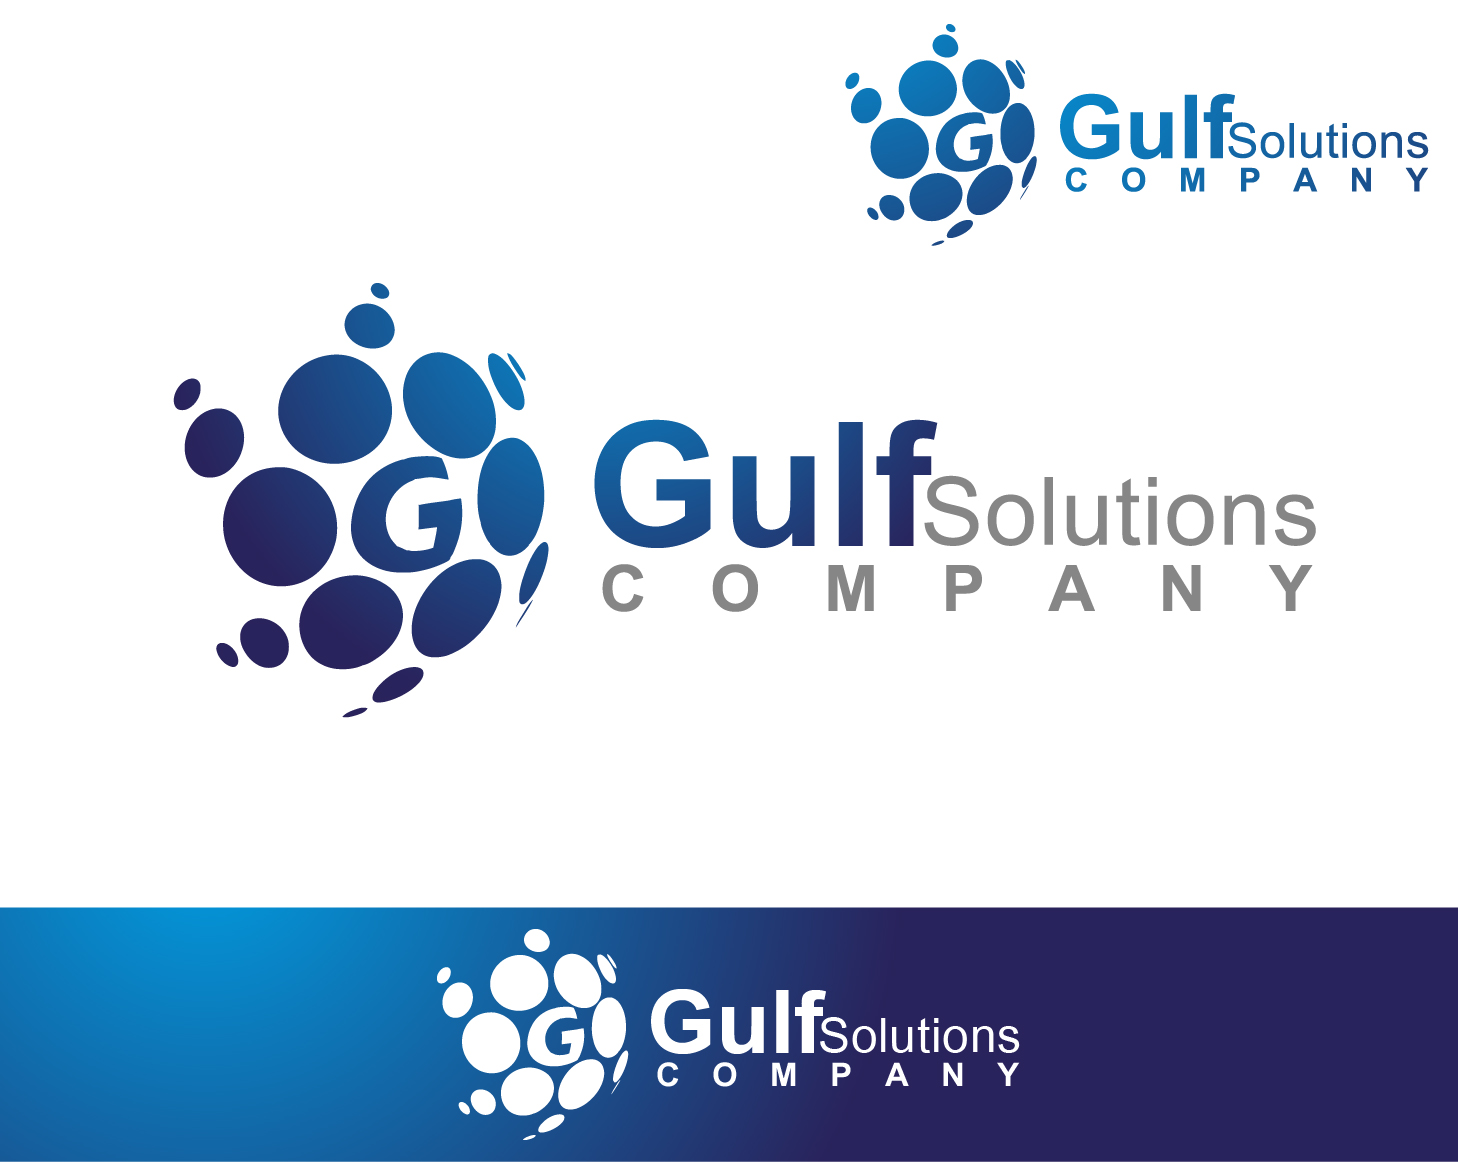 Logo Design by VENTSISLAV KOVACHEV - Entry No. 88 in the Logo Design Contest New Logo Design for Gulf solutions company.